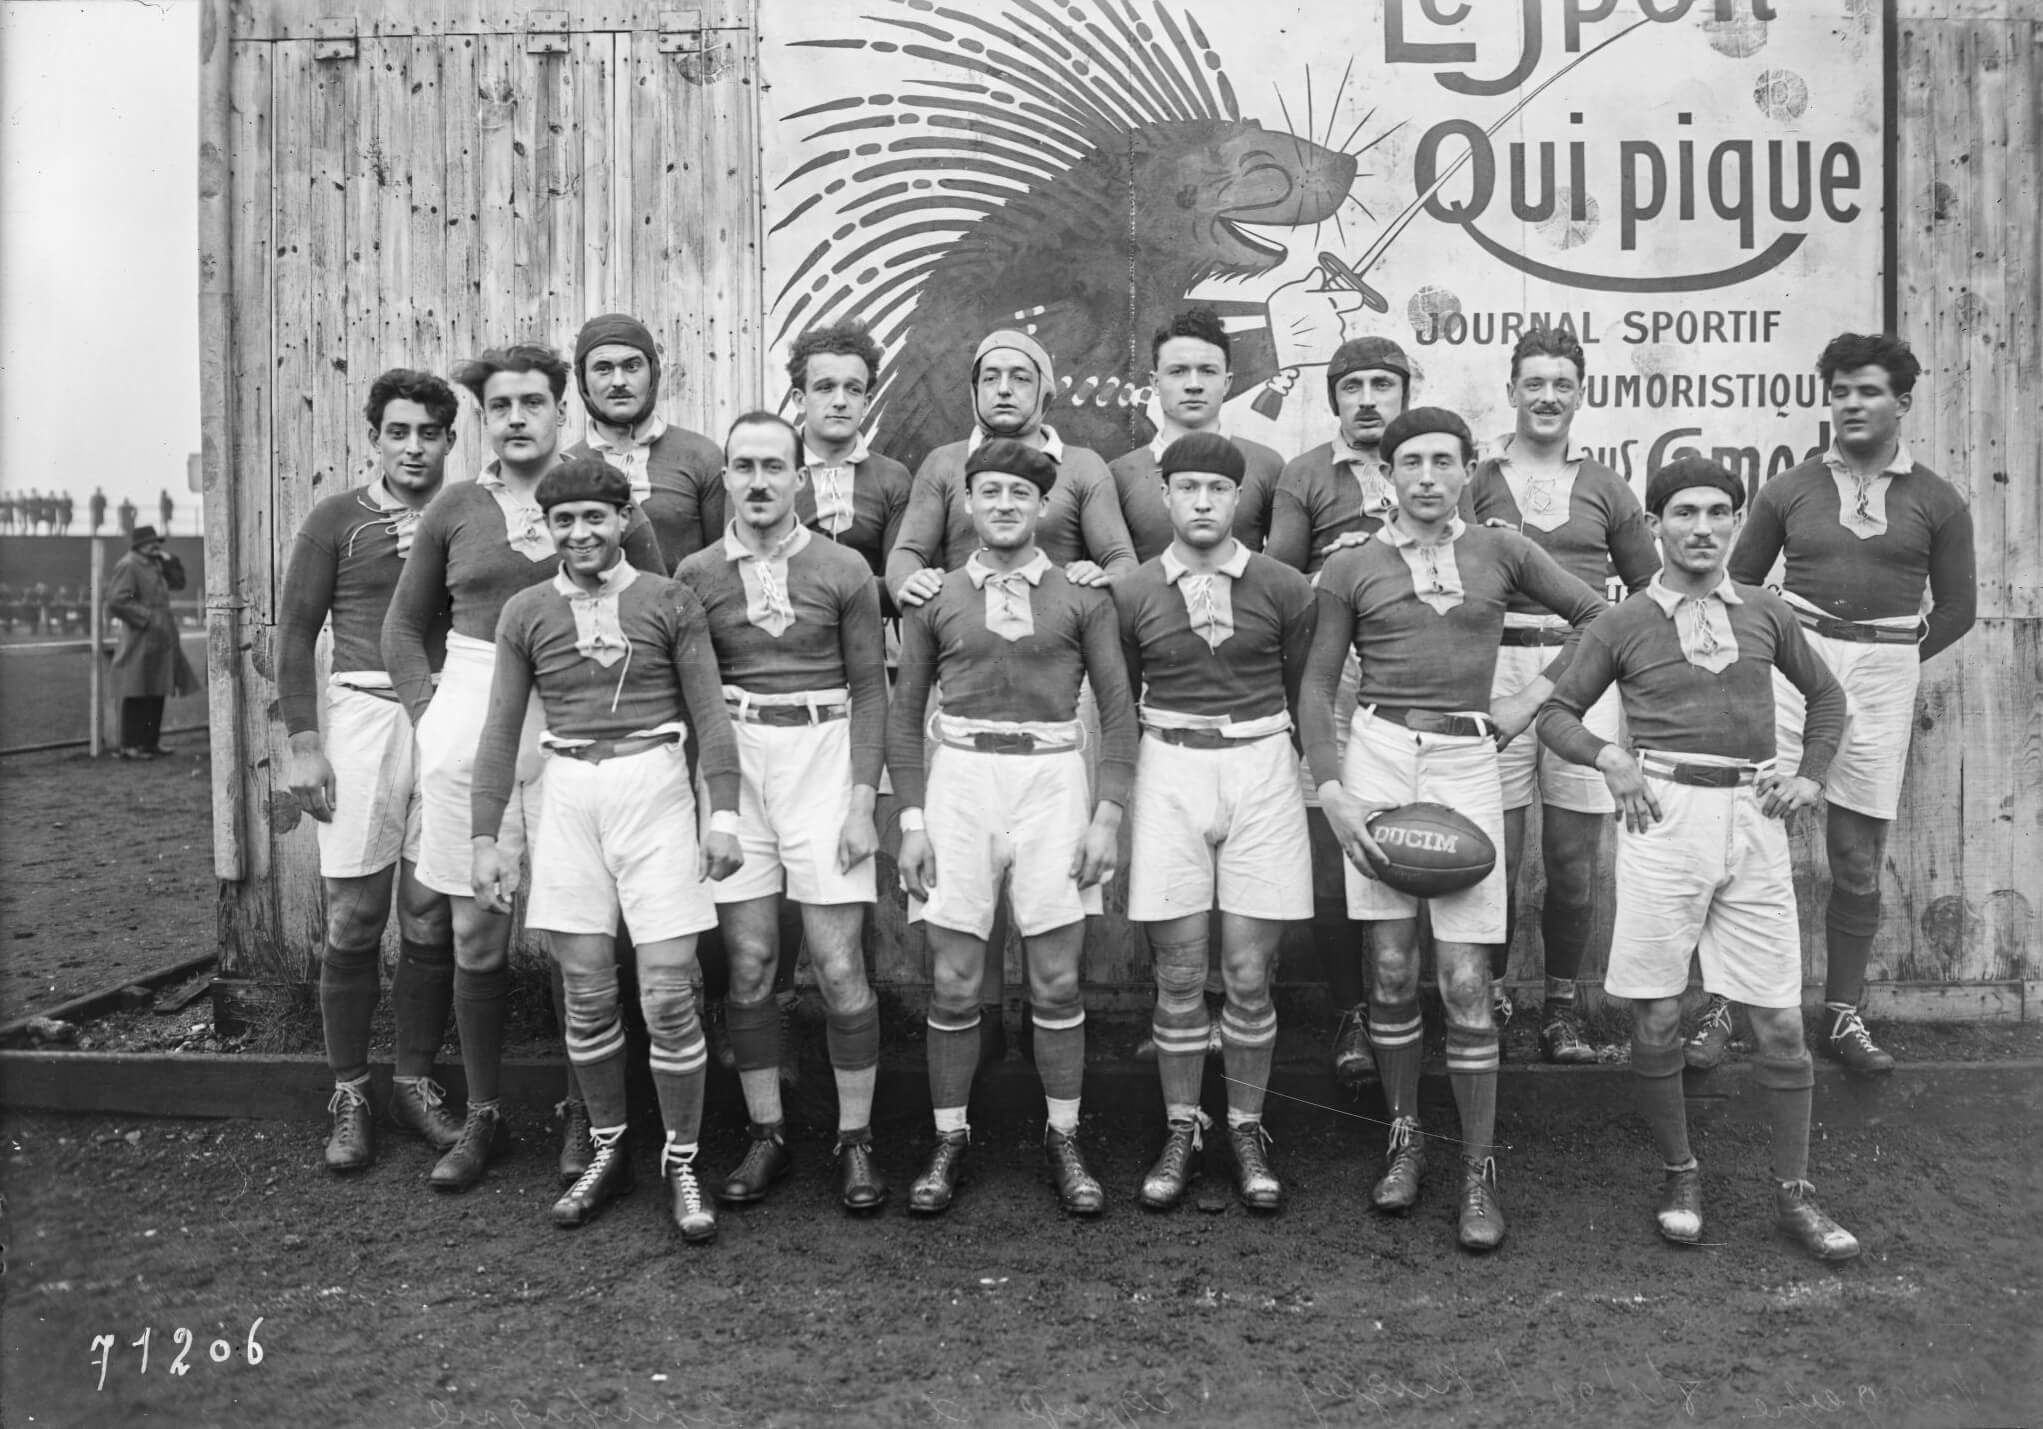 French rugby Olympic team. Photograph by Rol agency, 1922